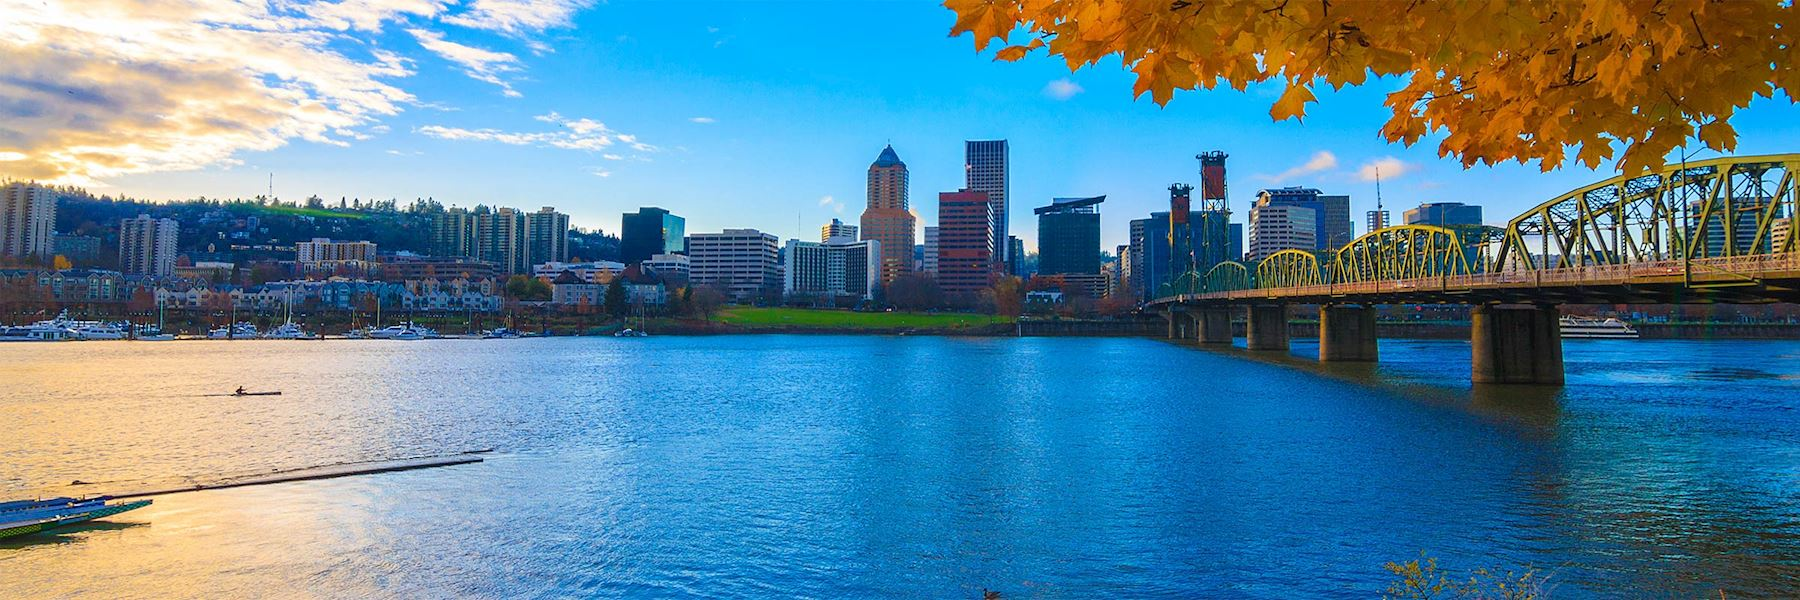 visit portland on a trip to the usa | audley travel